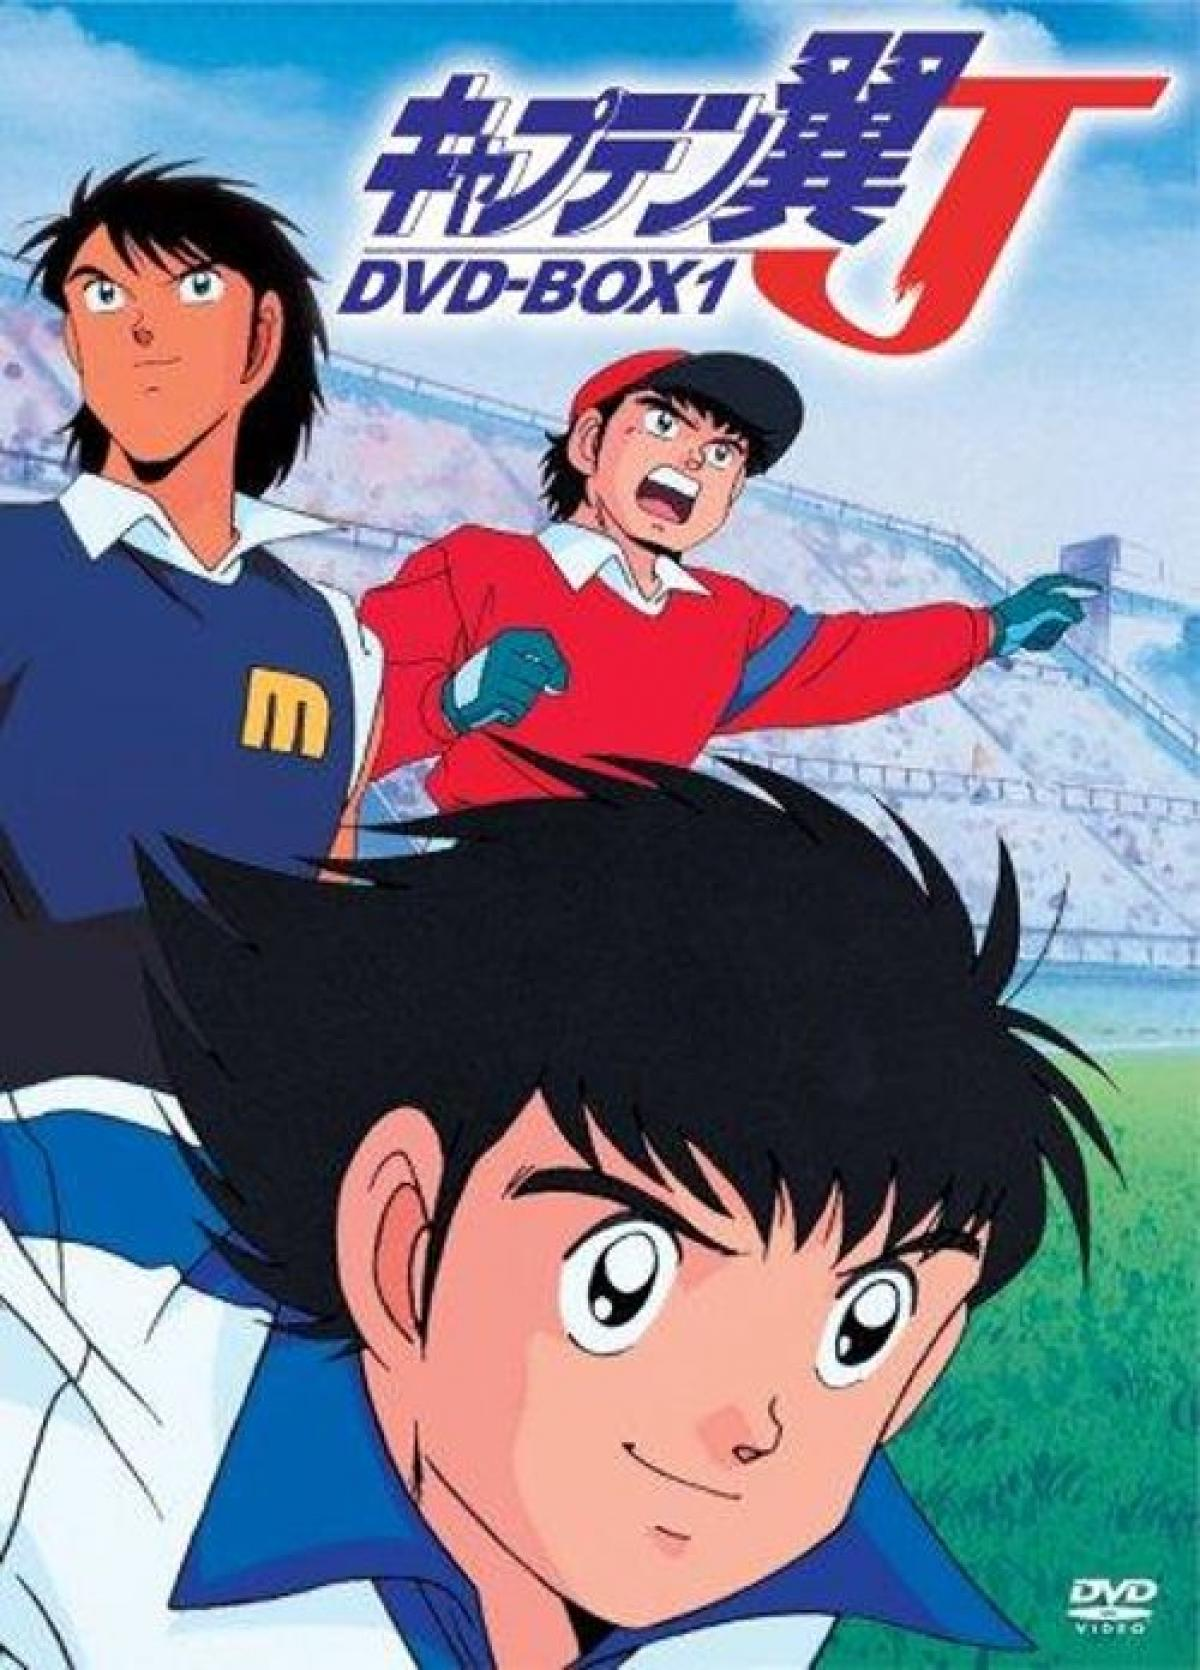 Olive Et Tom Le Retour Episode 46 : olive, retour, episode, Captain, Tsubasa, VOSTFR, Streaming